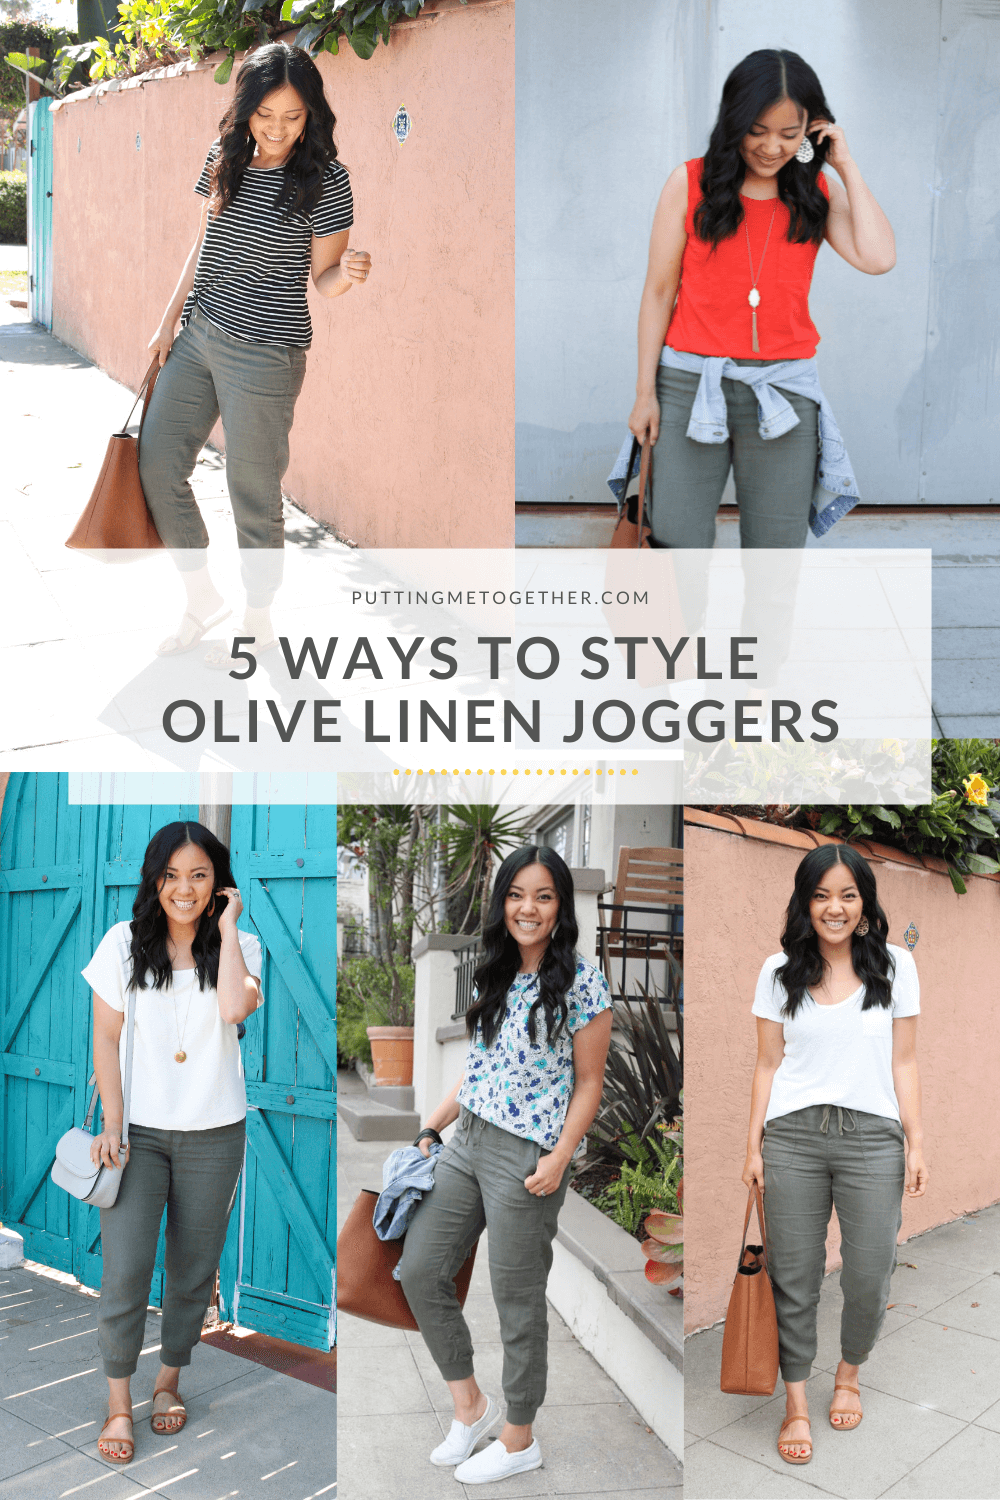 5 ways to style olive linen jogers